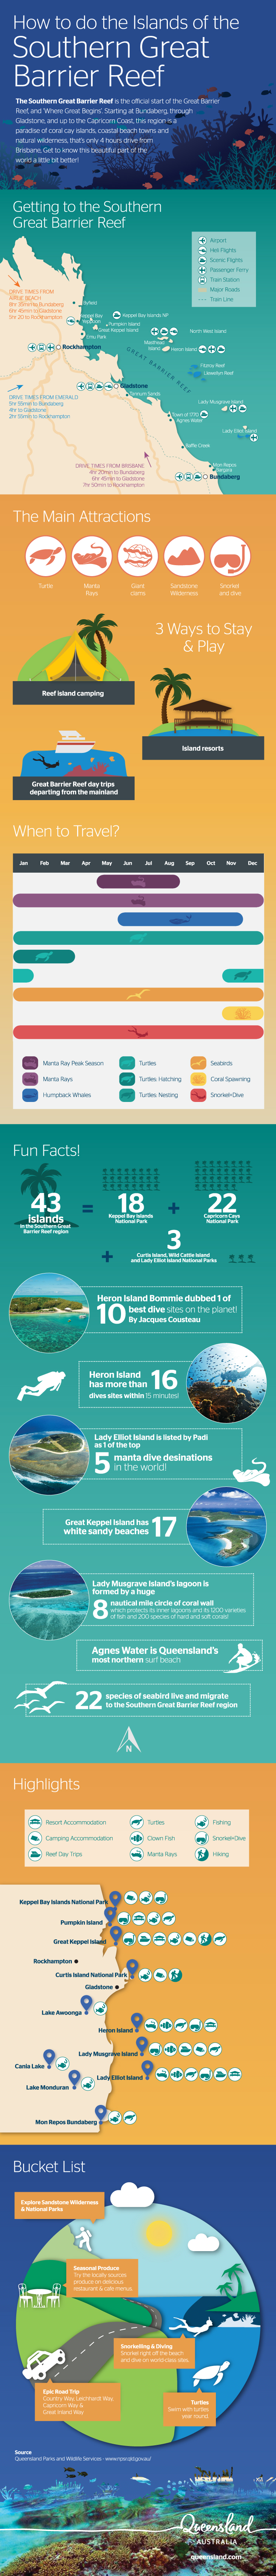 Southern Great Barrier Reef Infographic